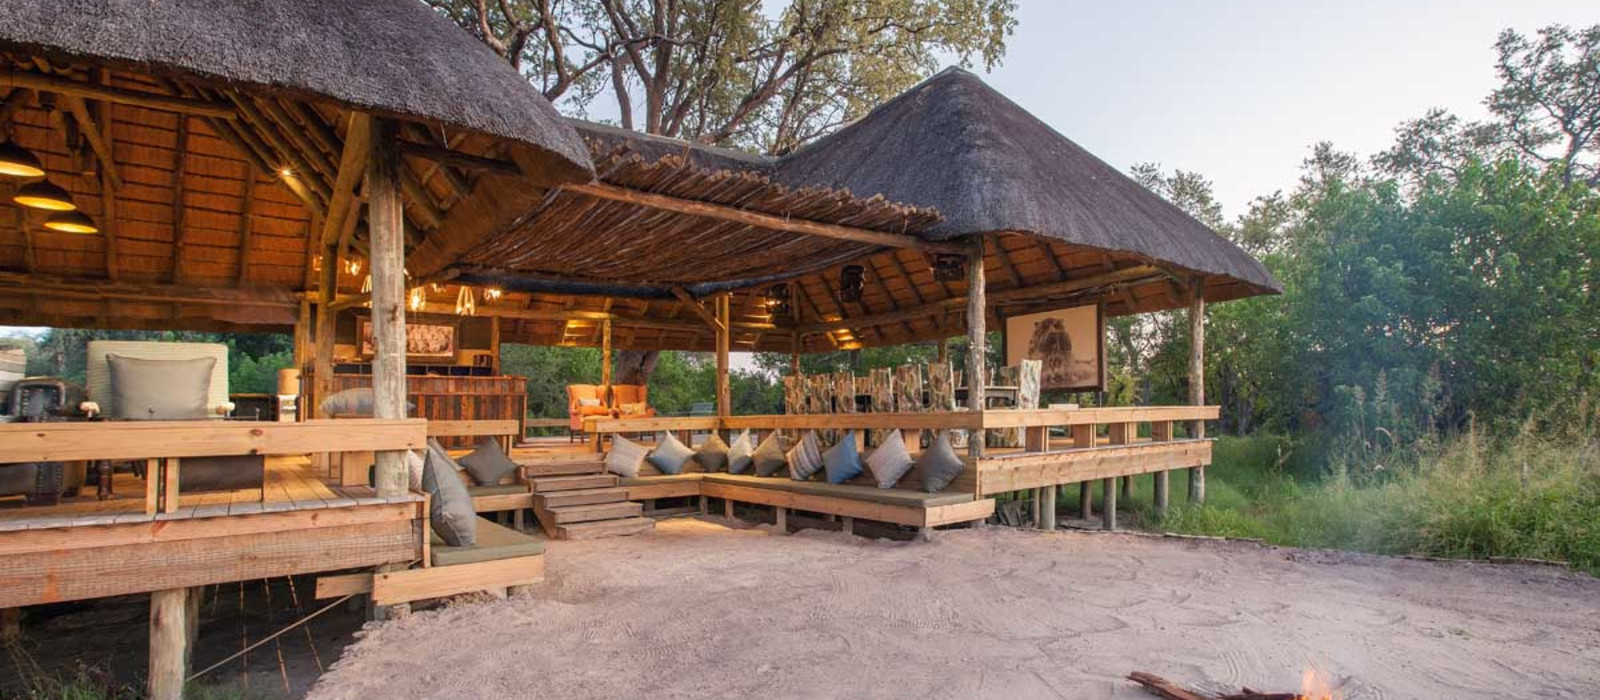 Hotel The Jackal and Hide Botswana